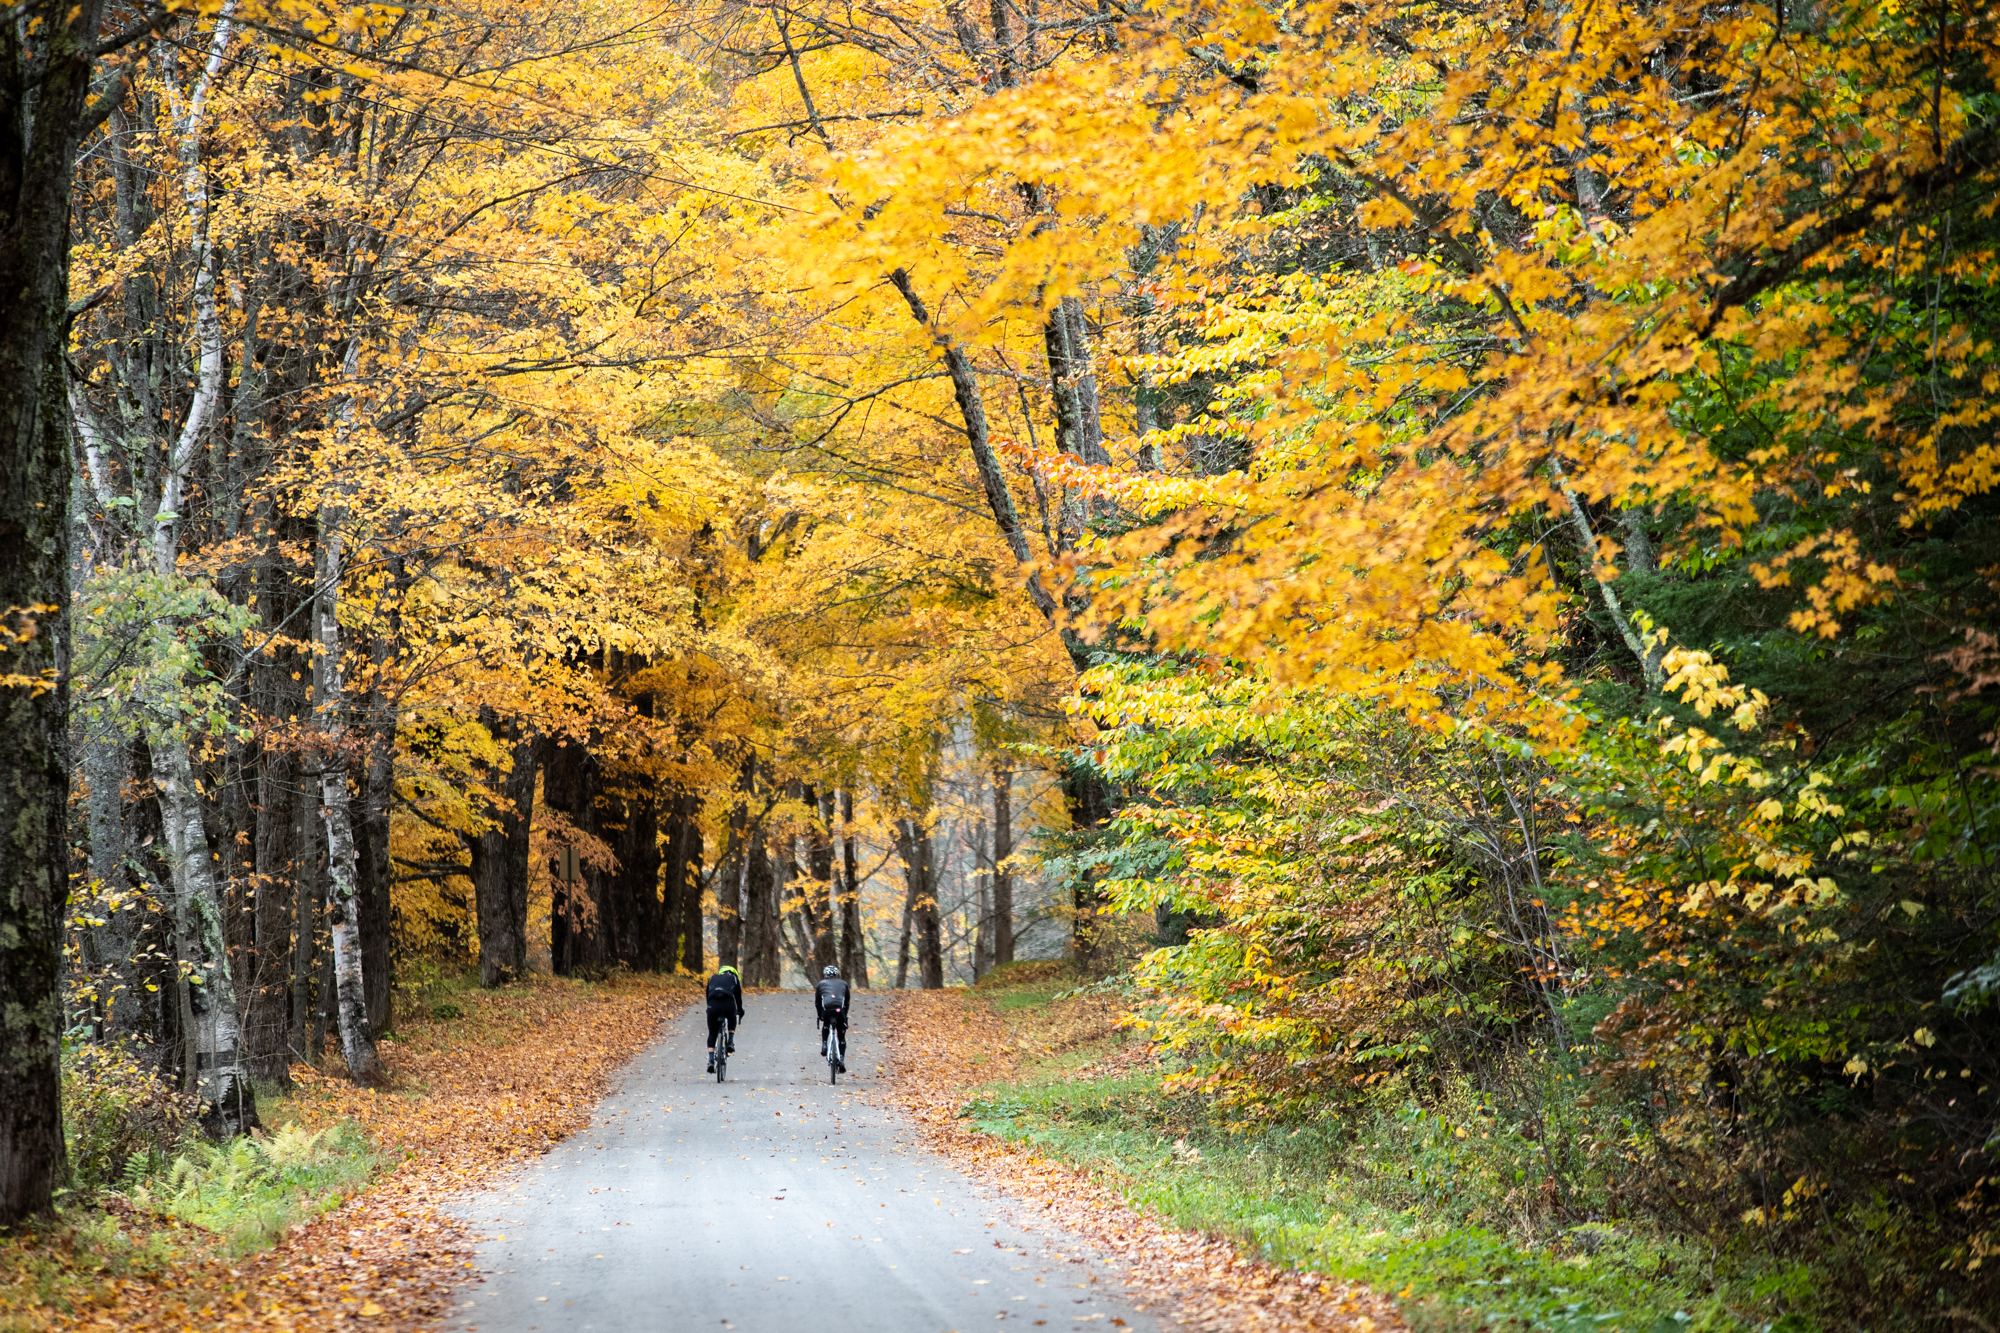 A tunnel of golden maples.